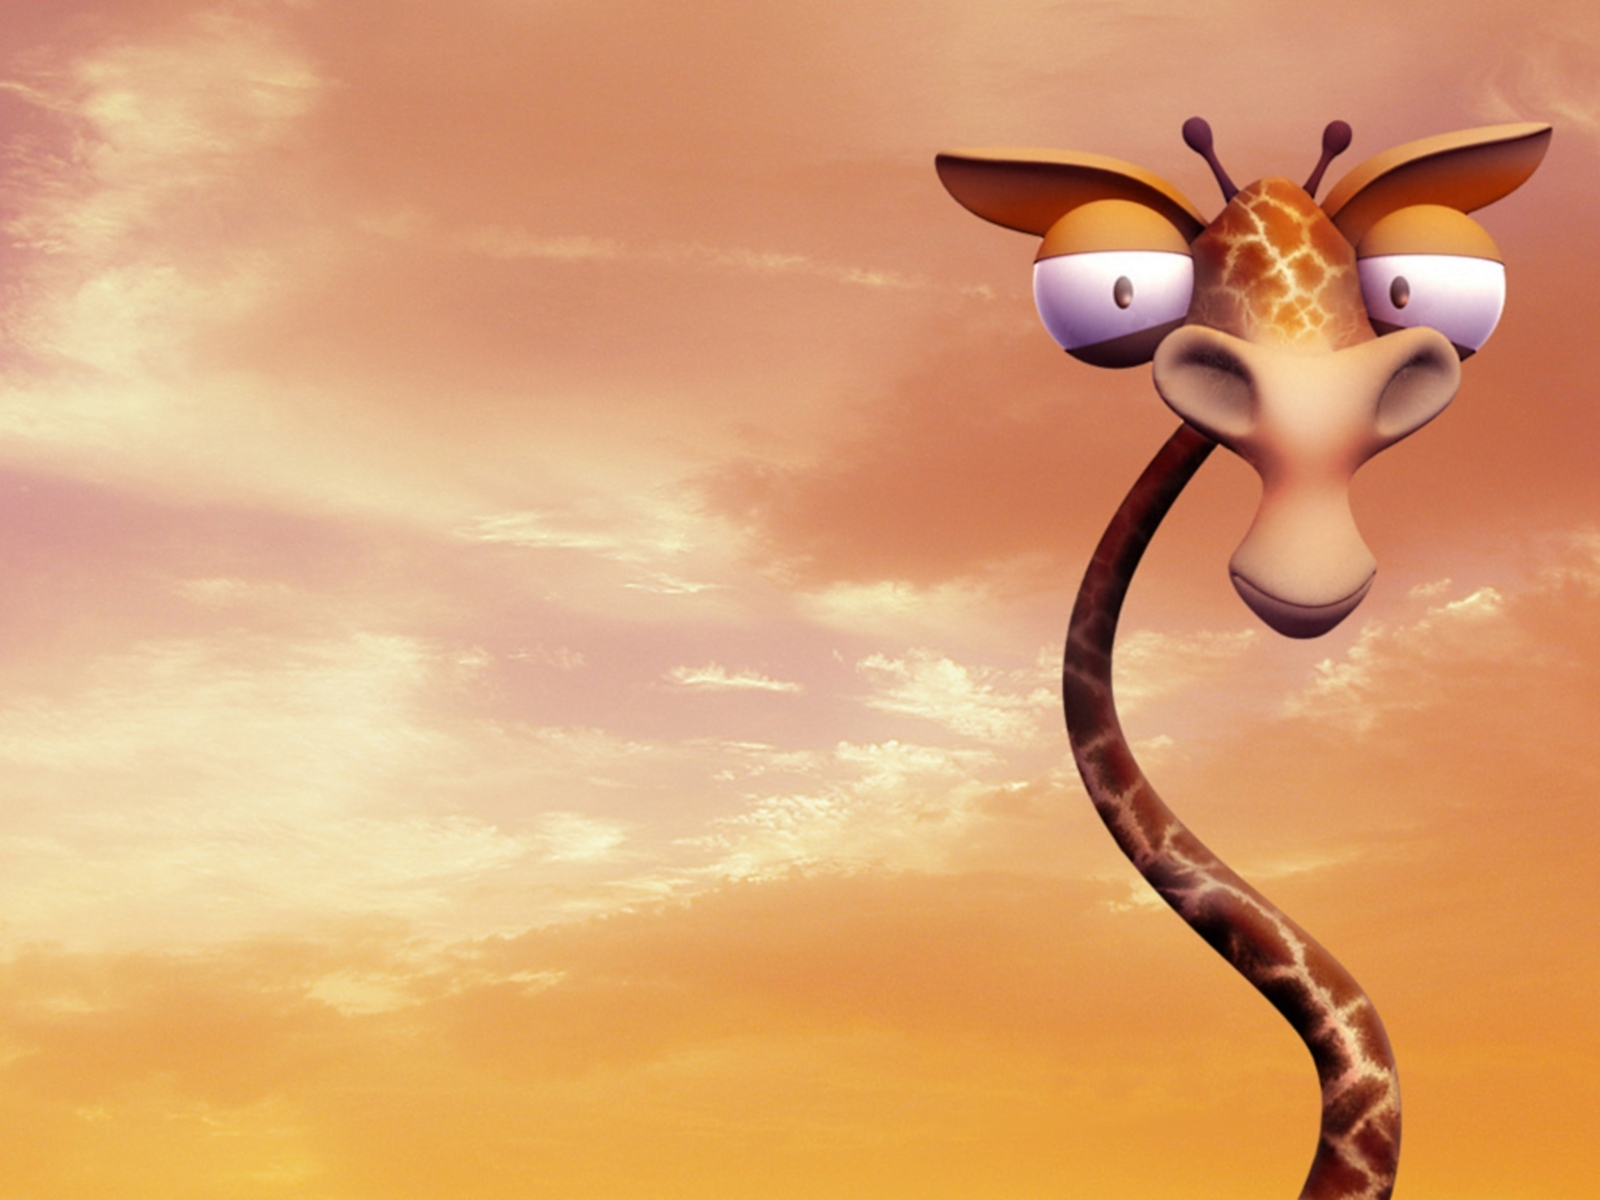 13040 download wallpaper Funny, Giraffes screensavers and pictures for free